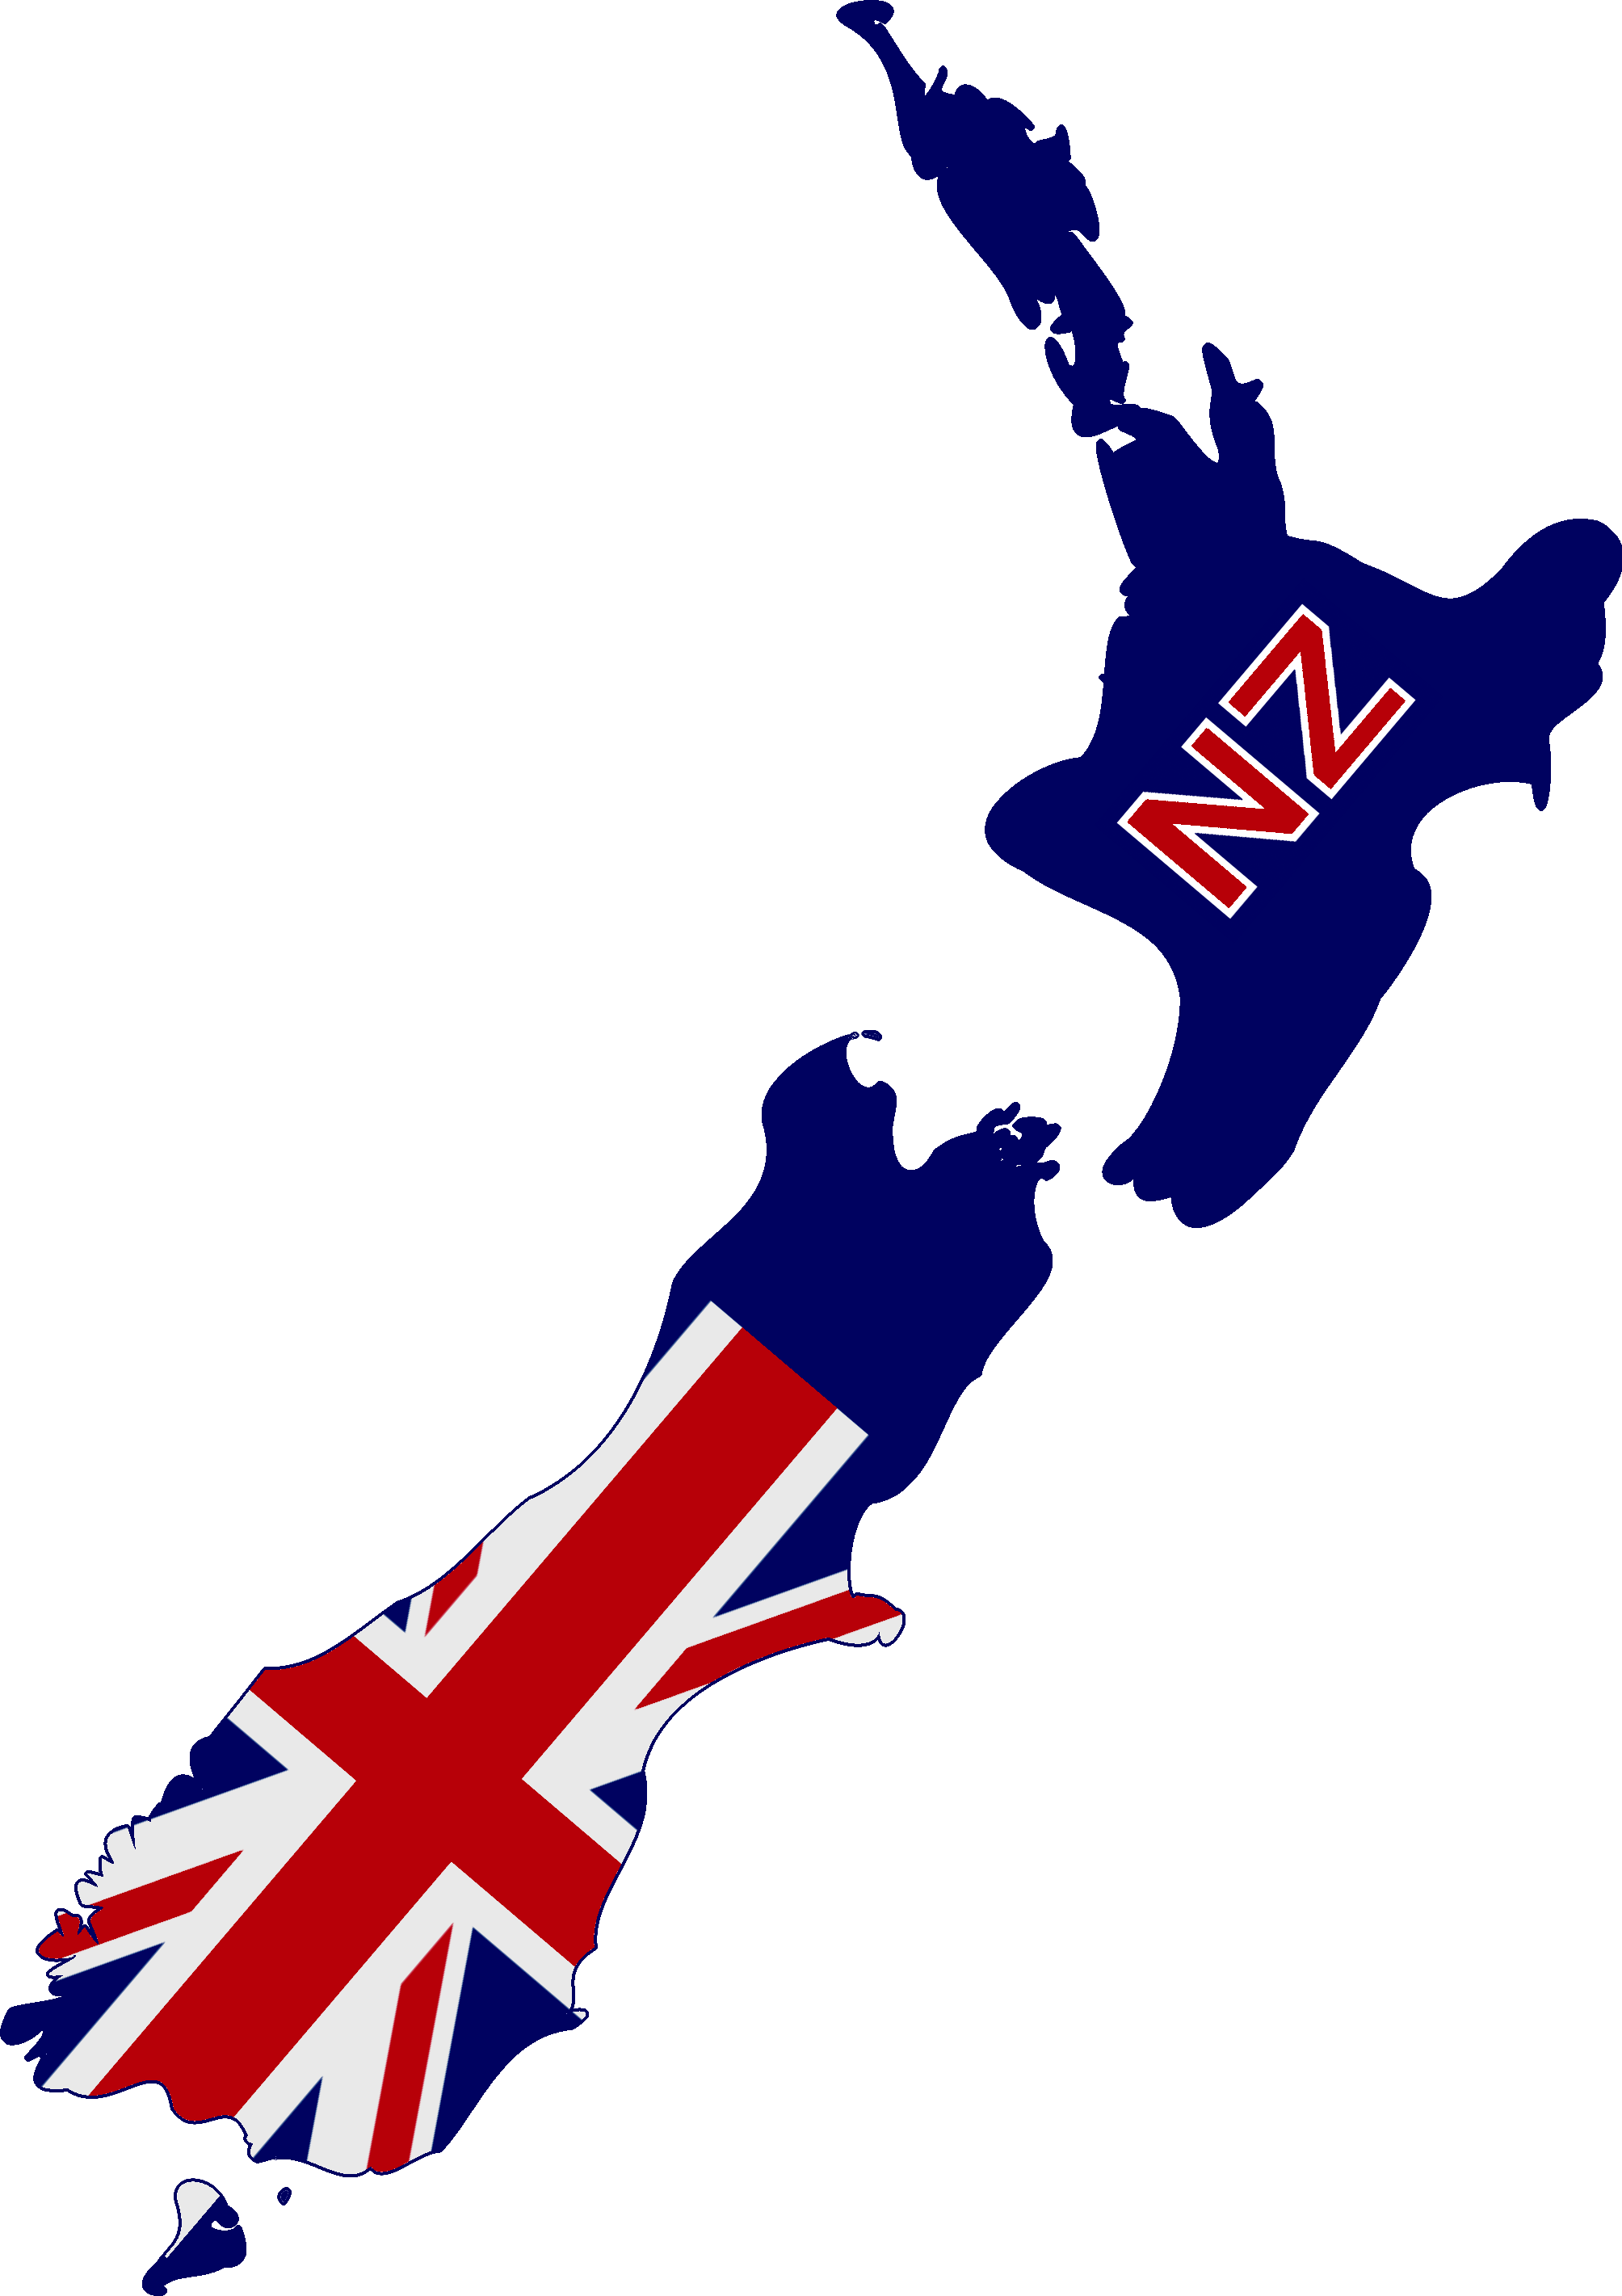 FileFlag Map Of New Zealand Png Wikimedia Commons - New zealand map png